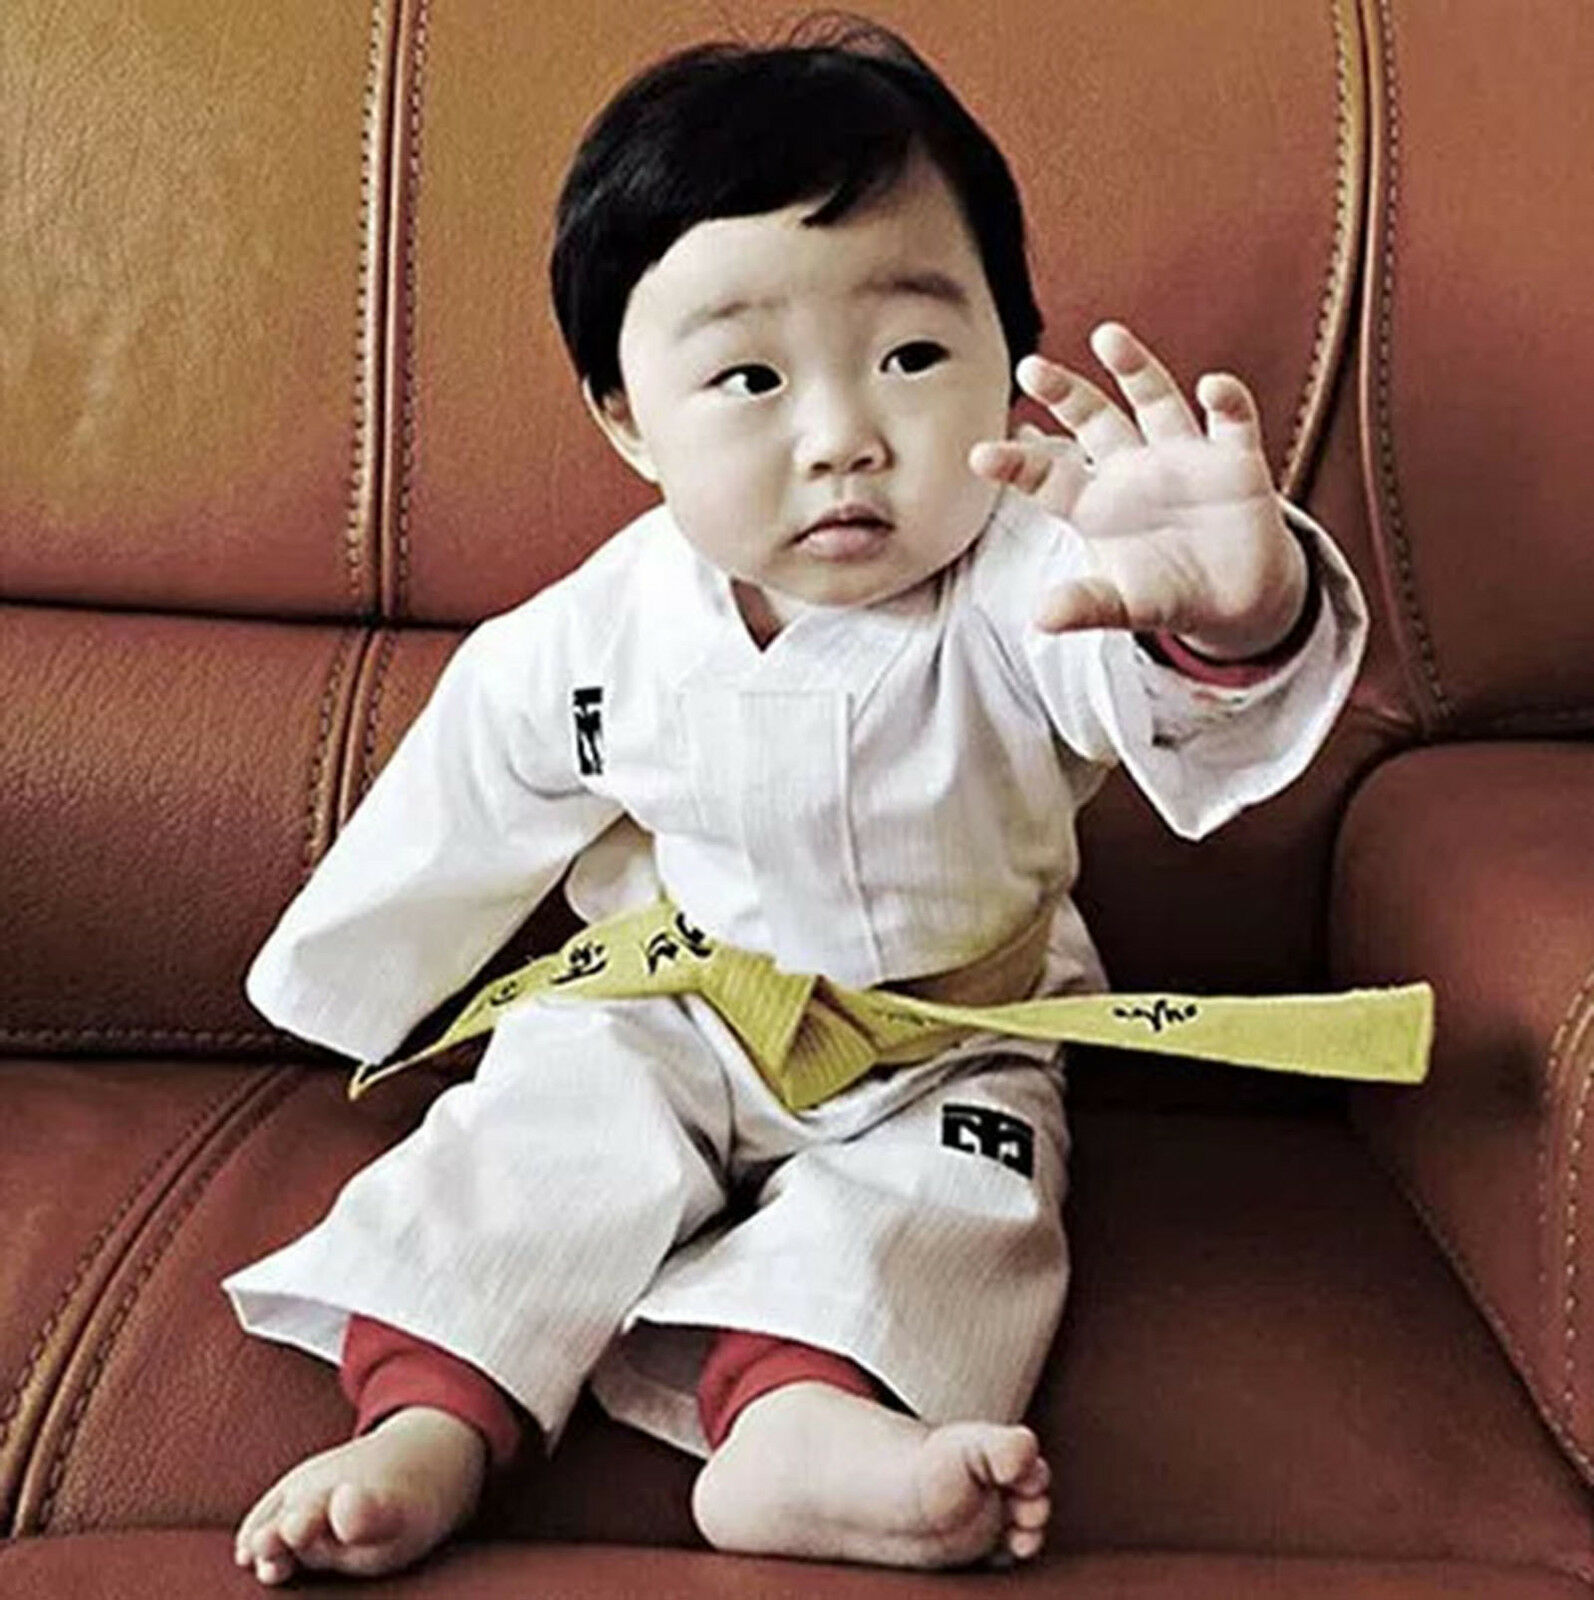 Mooto first birthday uniforms 1st year anniversary suits gifts presents MMA TKD